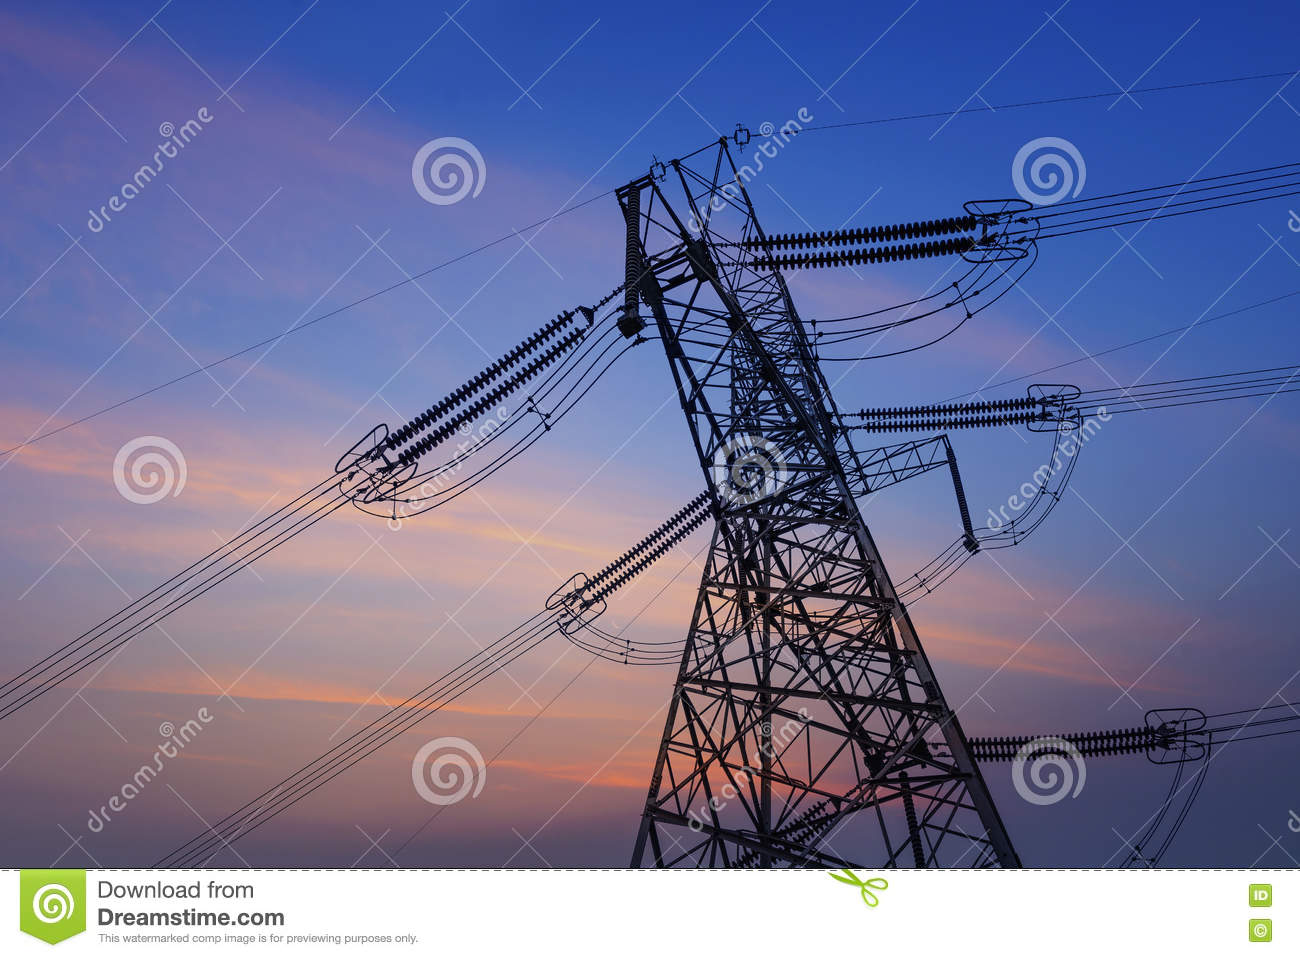 The high voltage transmission tower